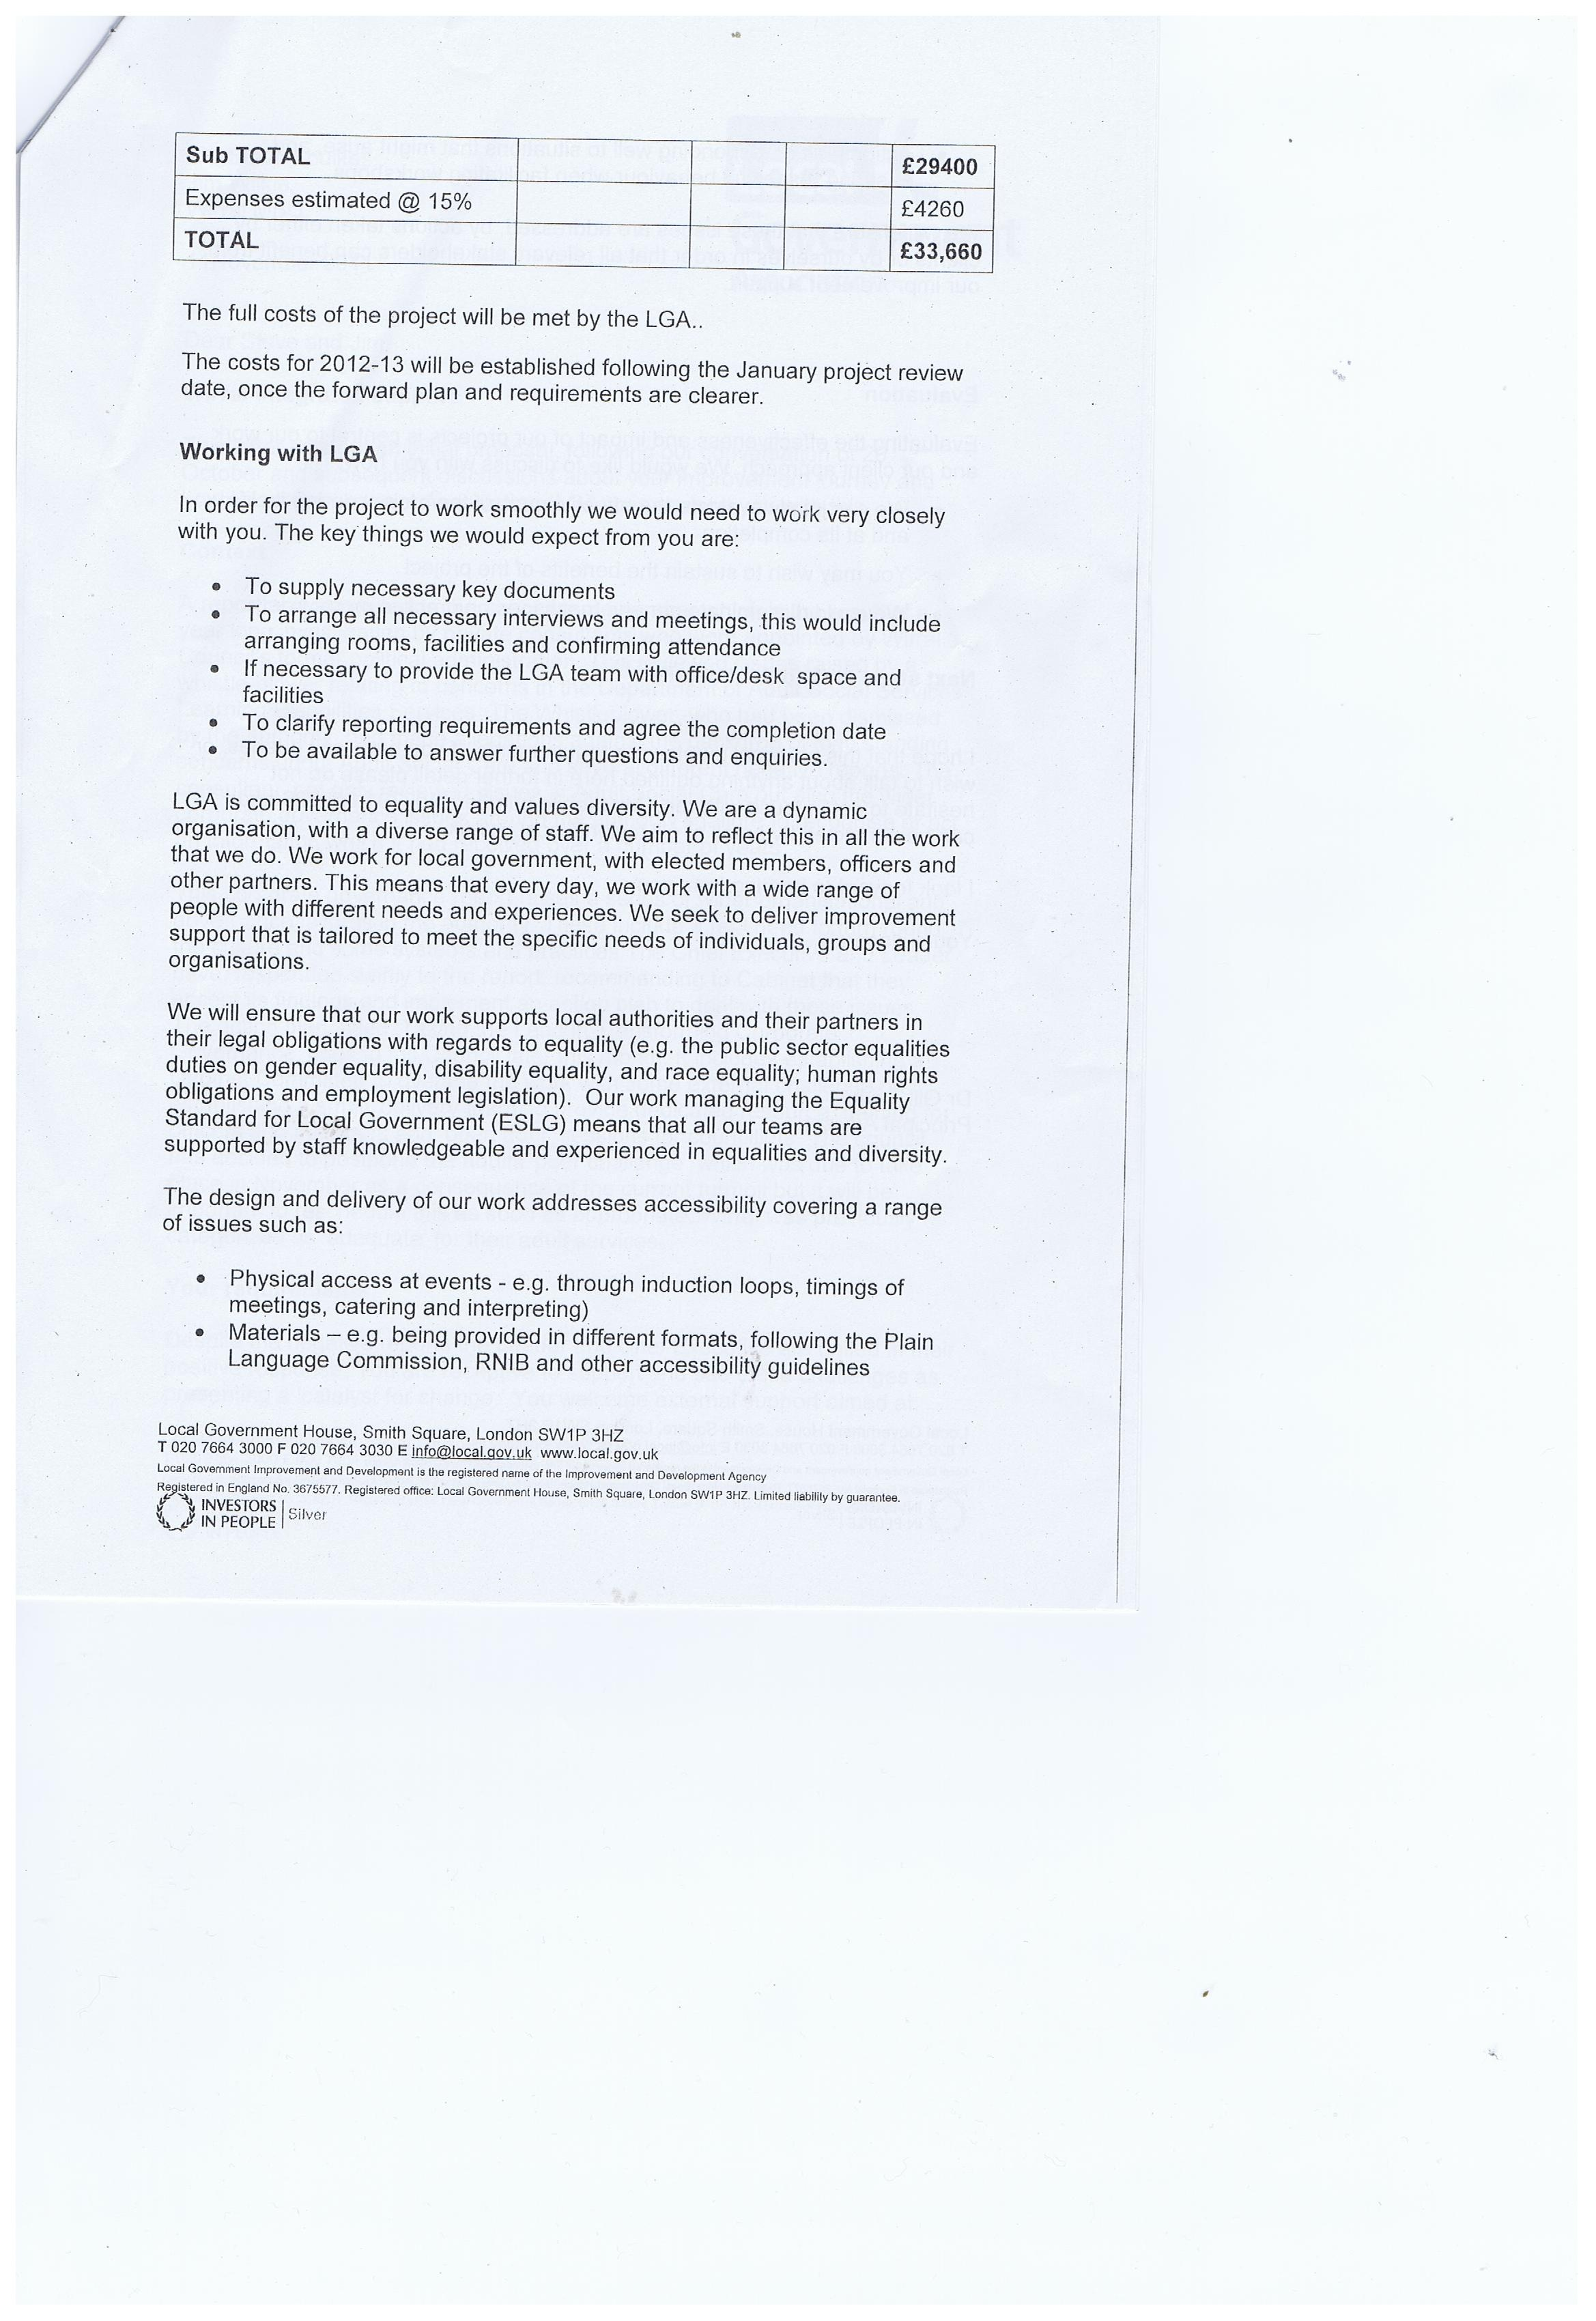 Proposal Letter For Employment 11Kbw Invoice For Appeal Of An Ico Decision Notice October 2013 .